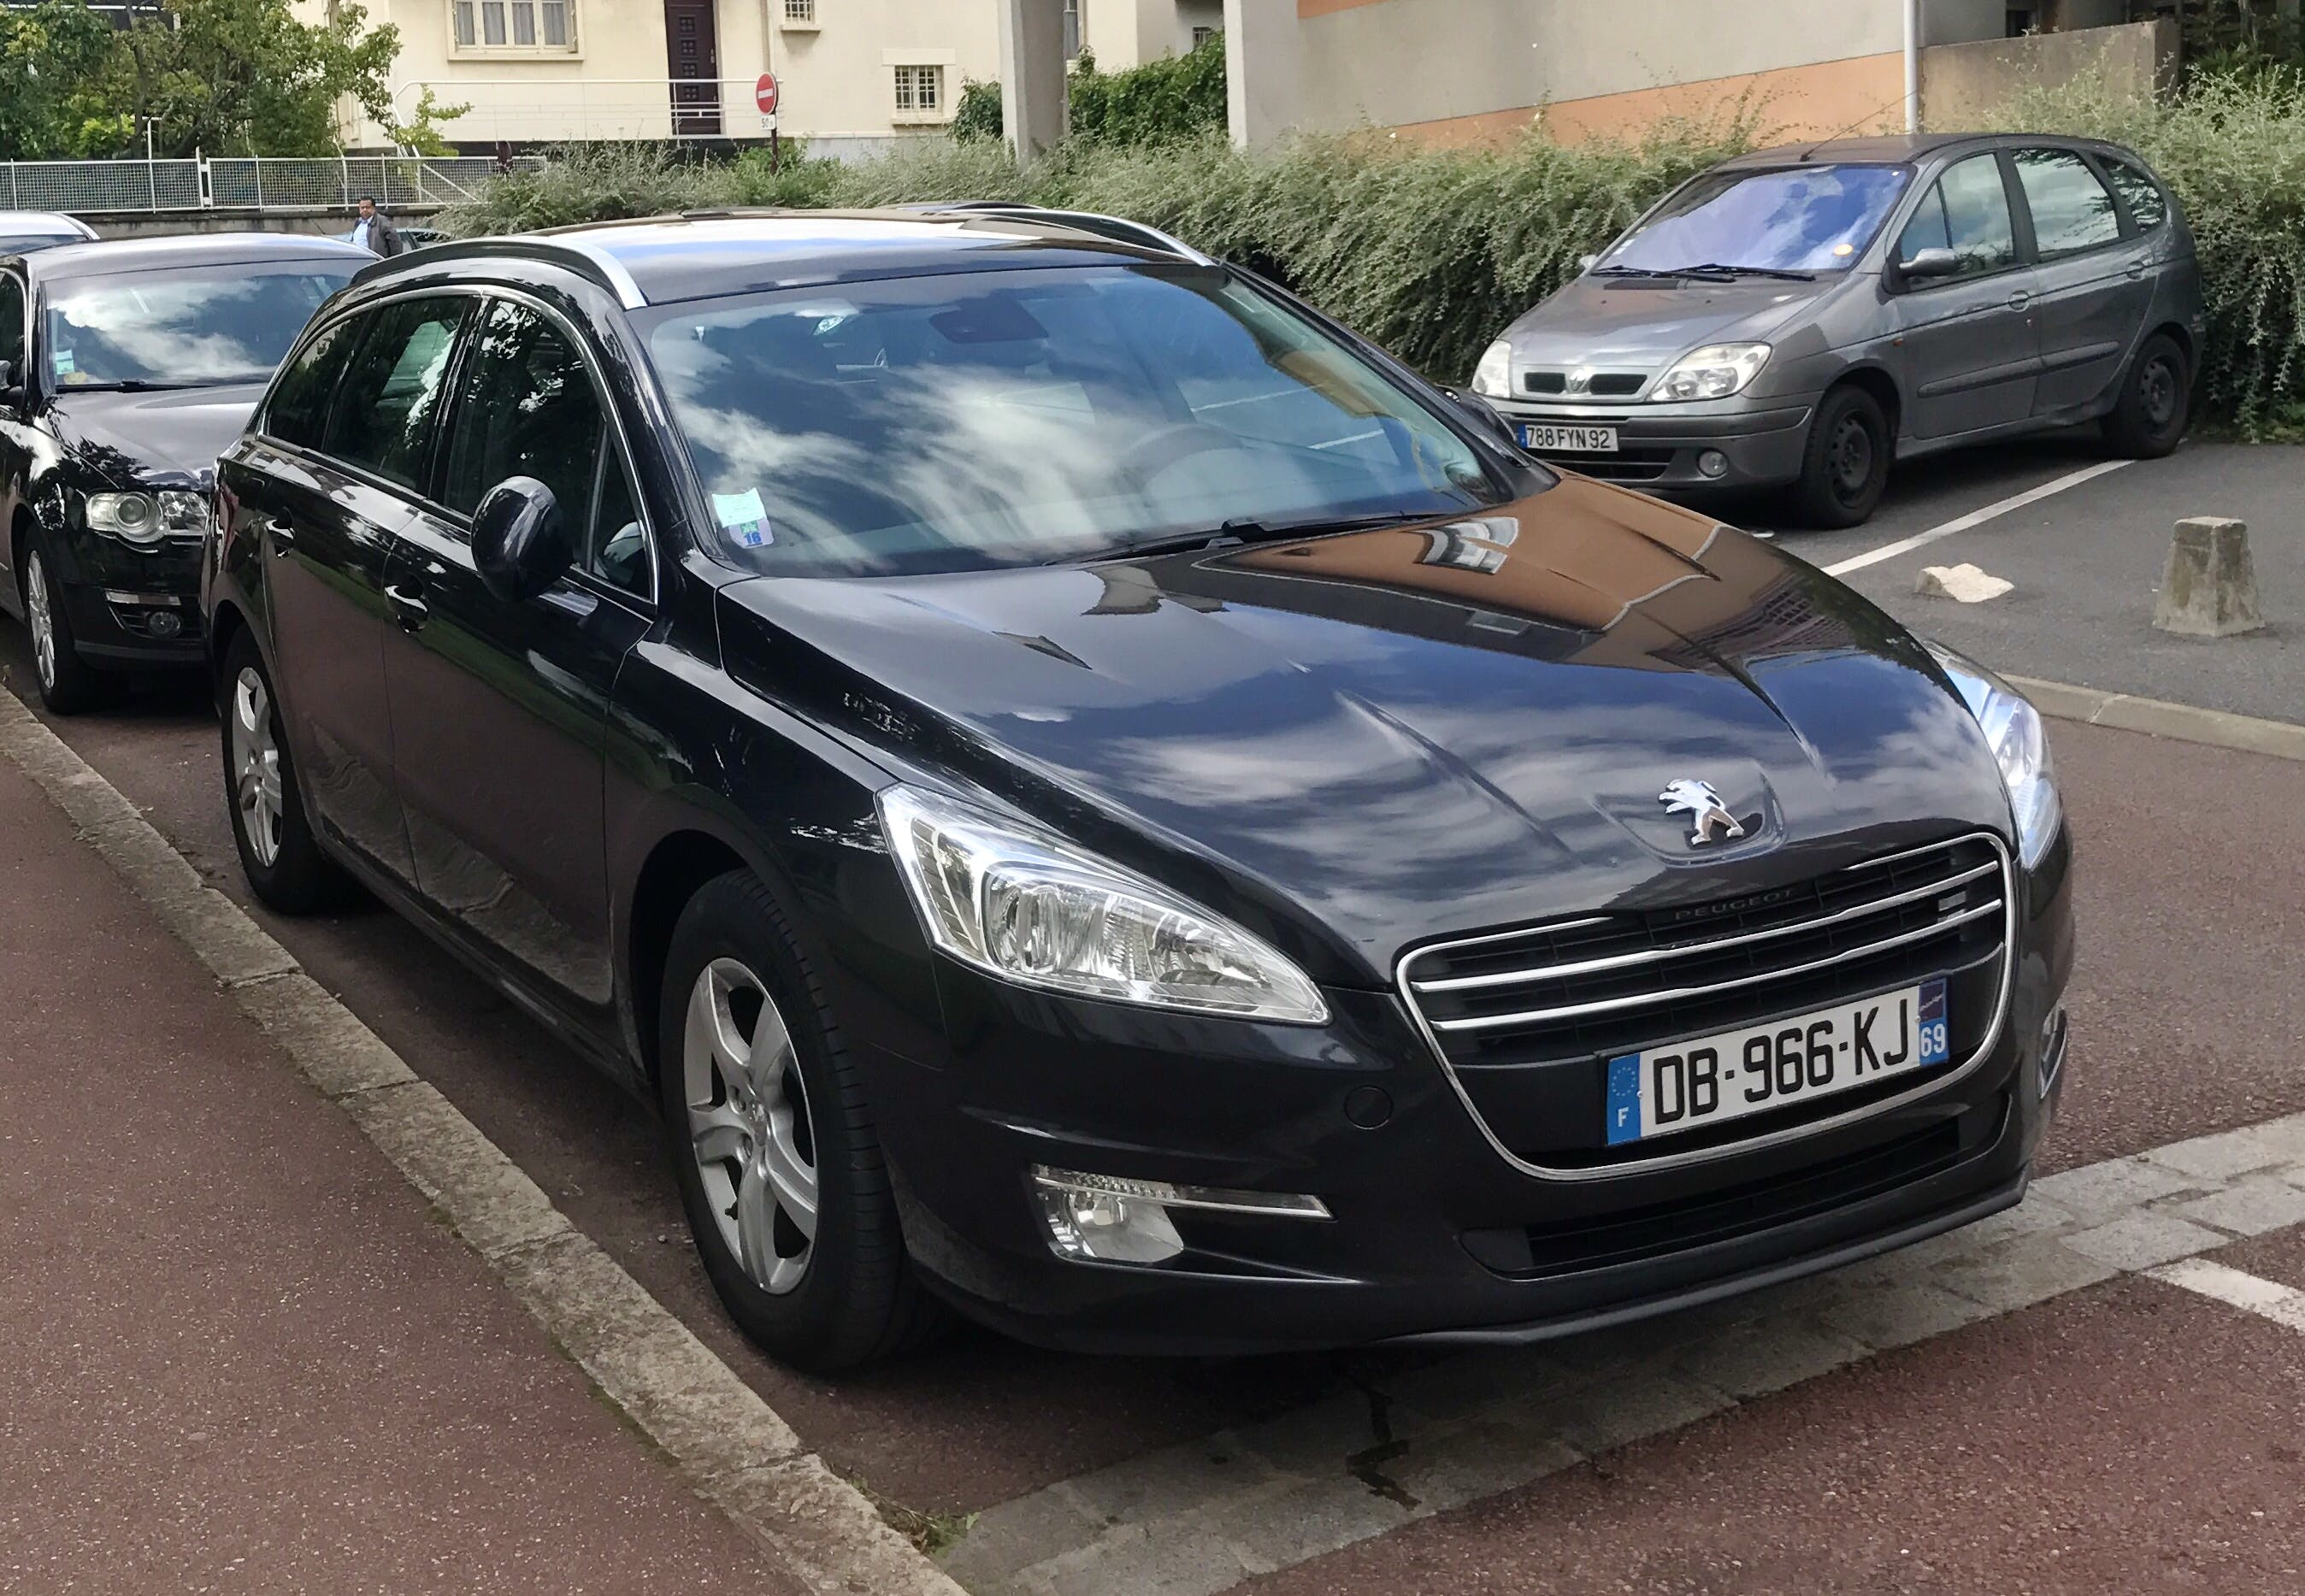 Peugeot 508 SW 1.6 HDI business pack, 2013, Diesel, automatique